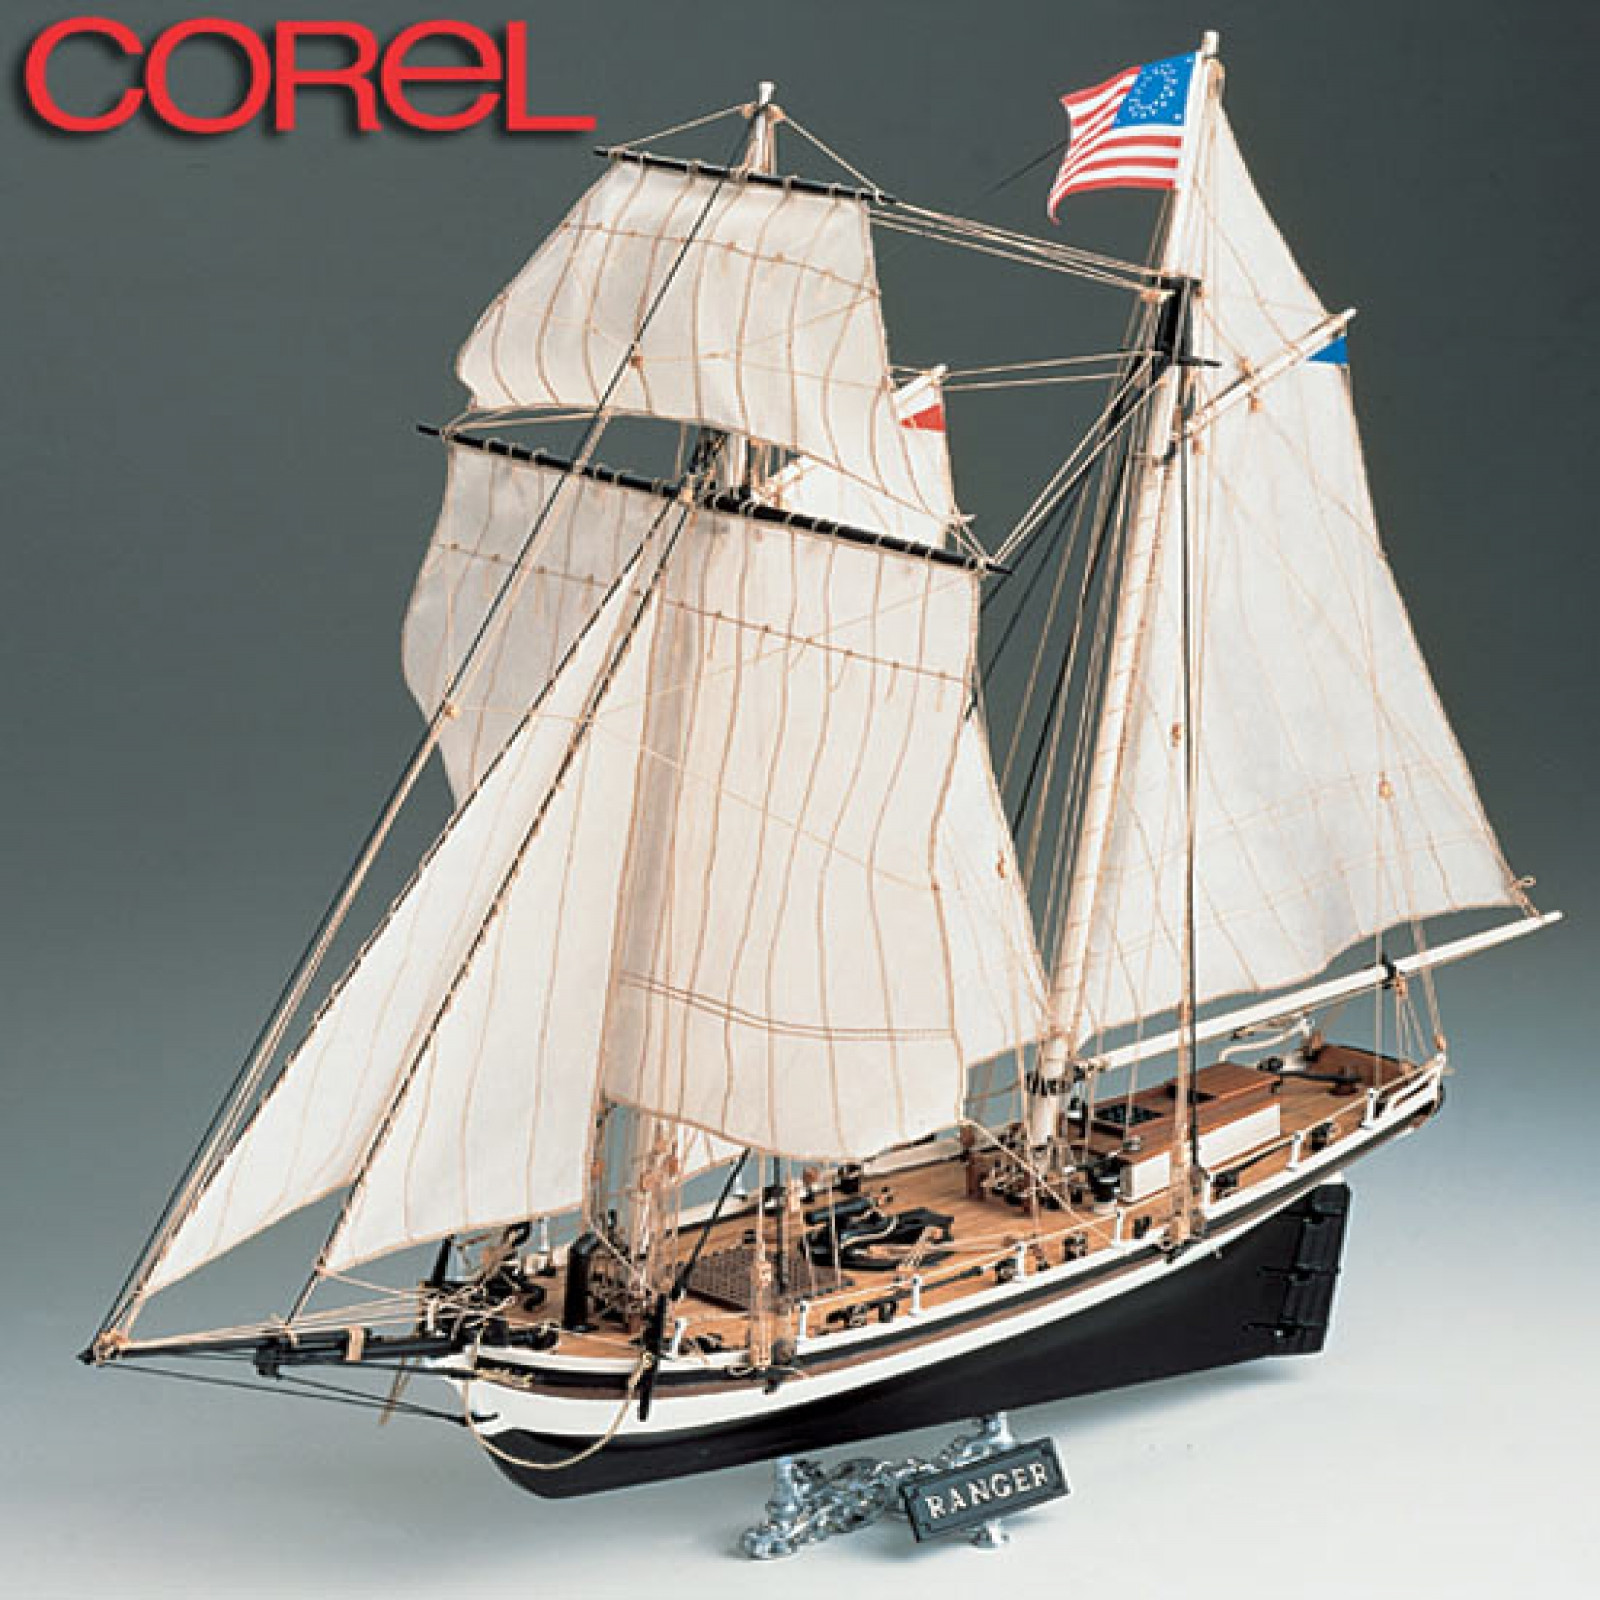 COREL RANGER U S REVENUE CUTTER 1:50